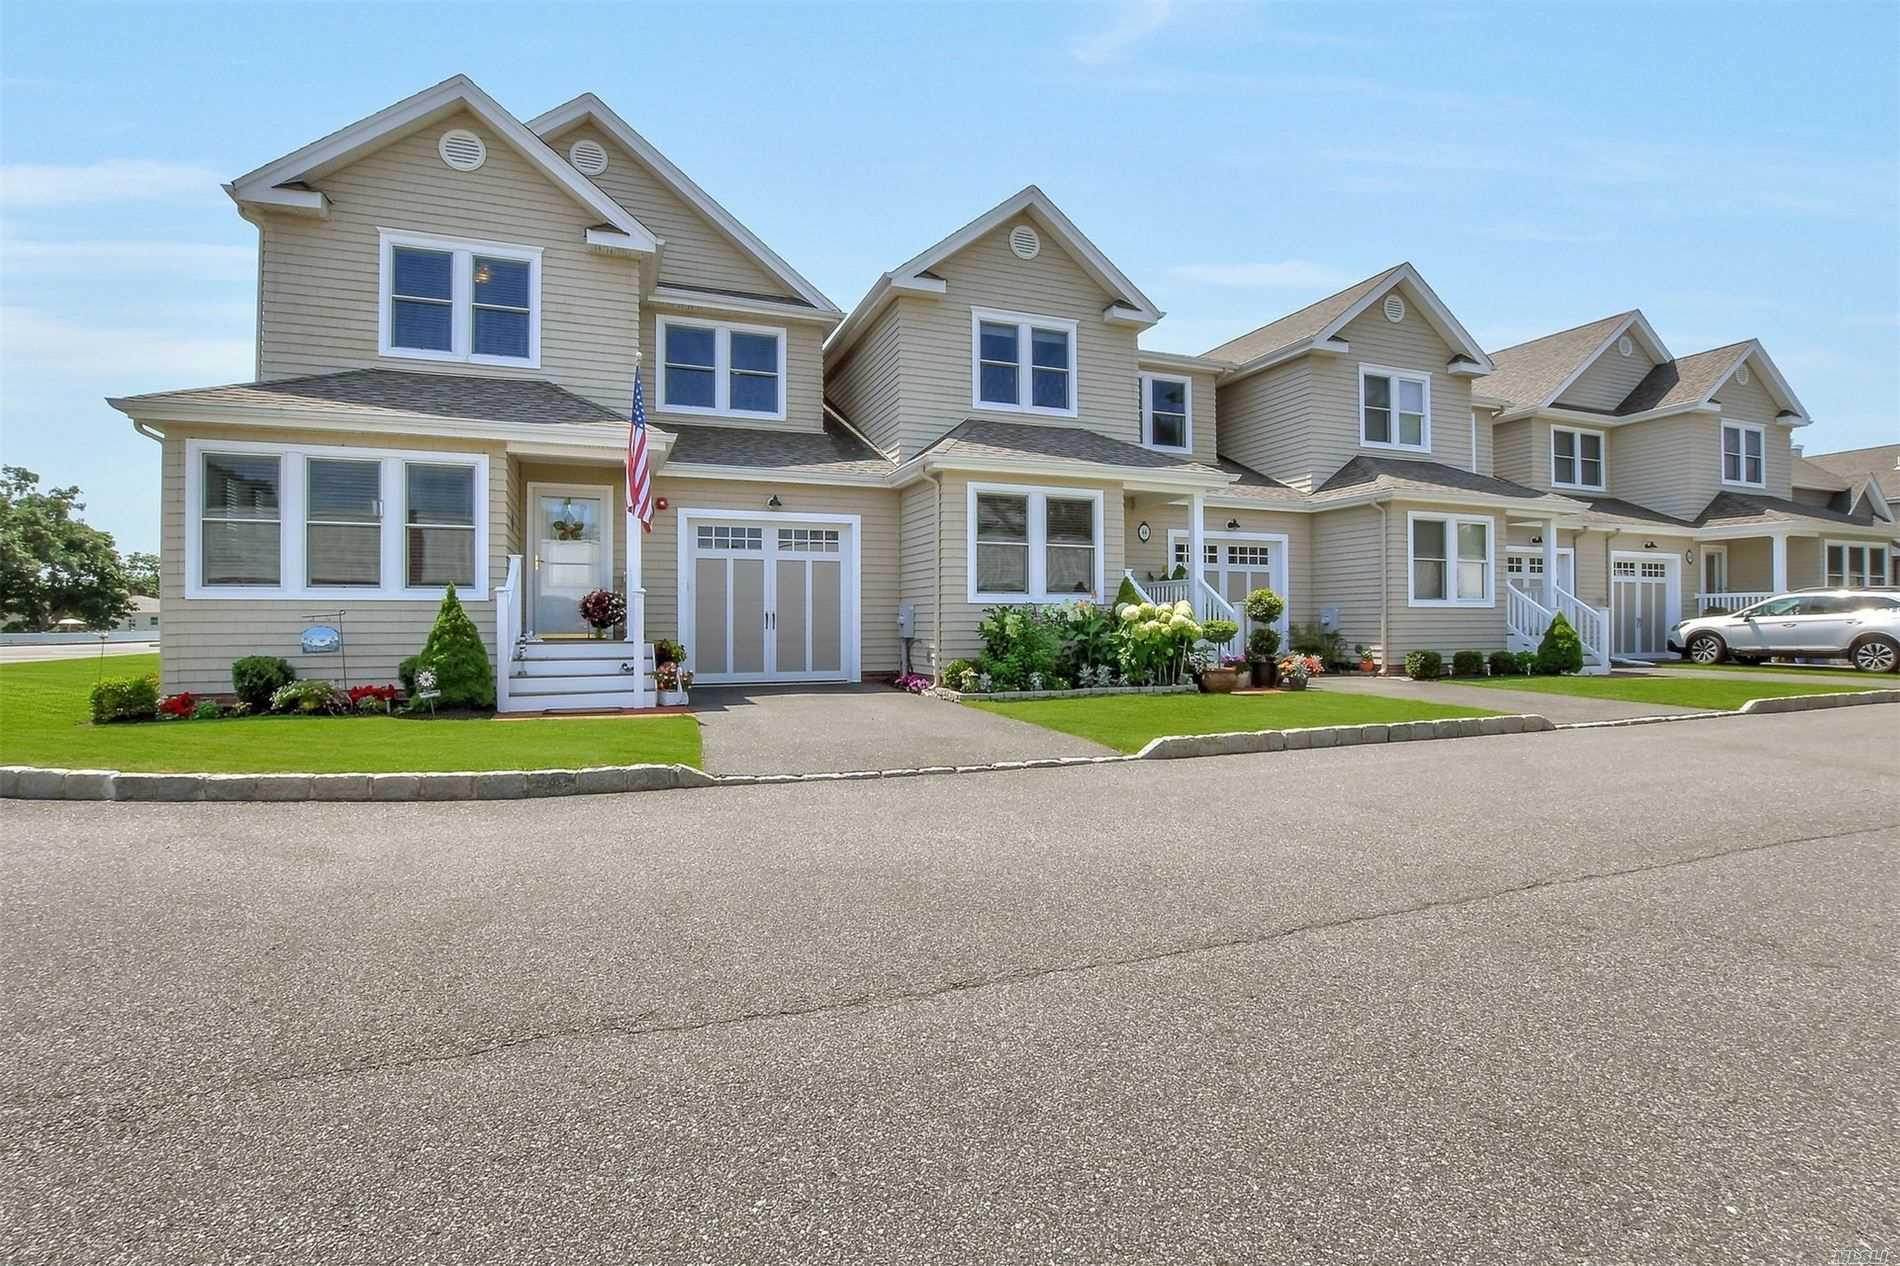 Property for sale at 43 Meadow Drive # 43, Eastport NY 11941, Eastport,  New York 11941